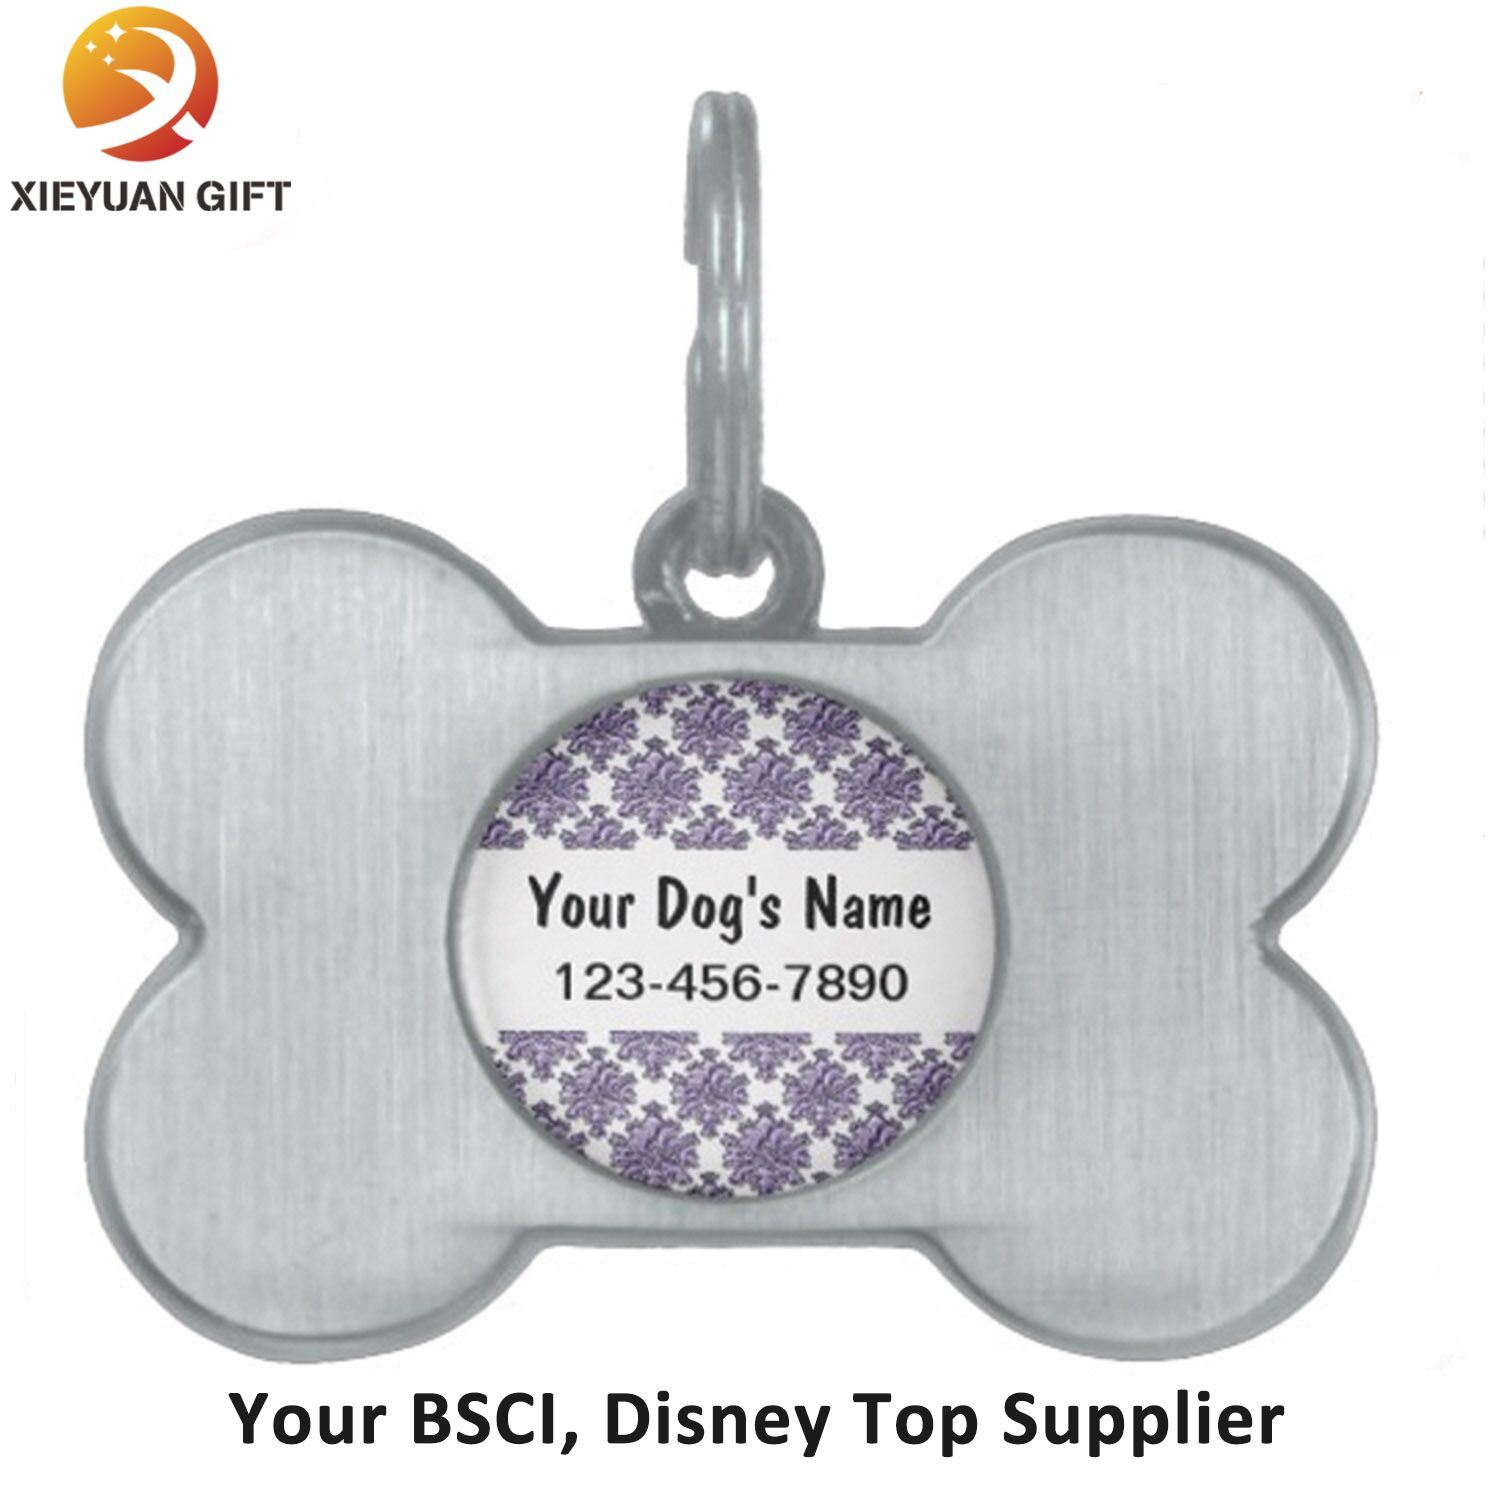 Black Pets The Original Dog ID Tag with Medium Personalized